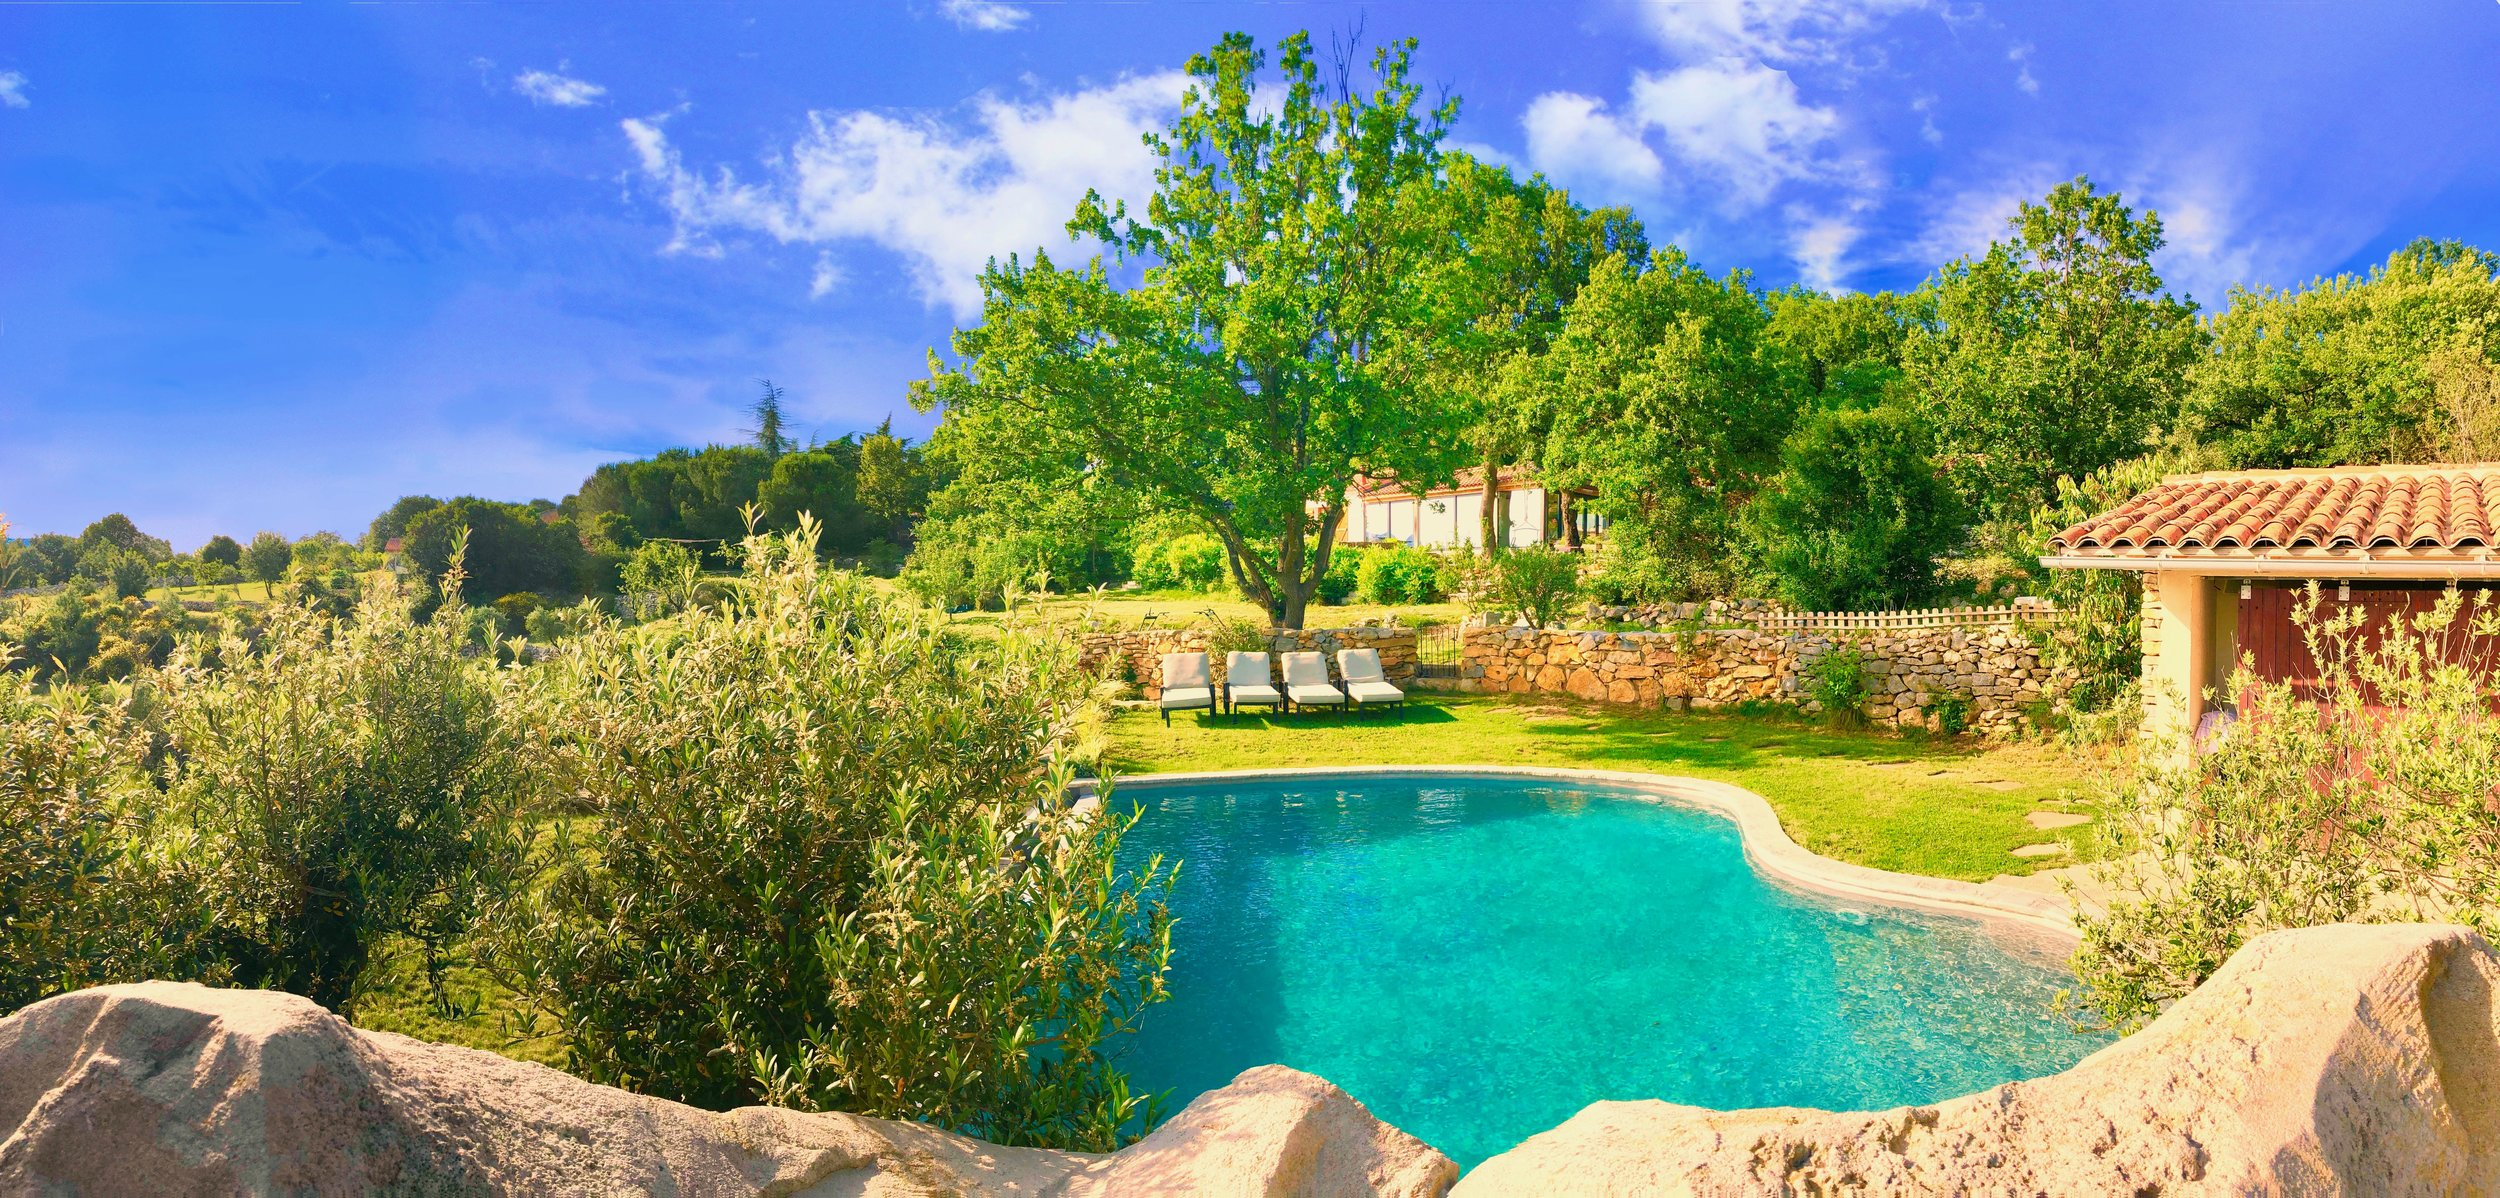 Self catering villas in south of france